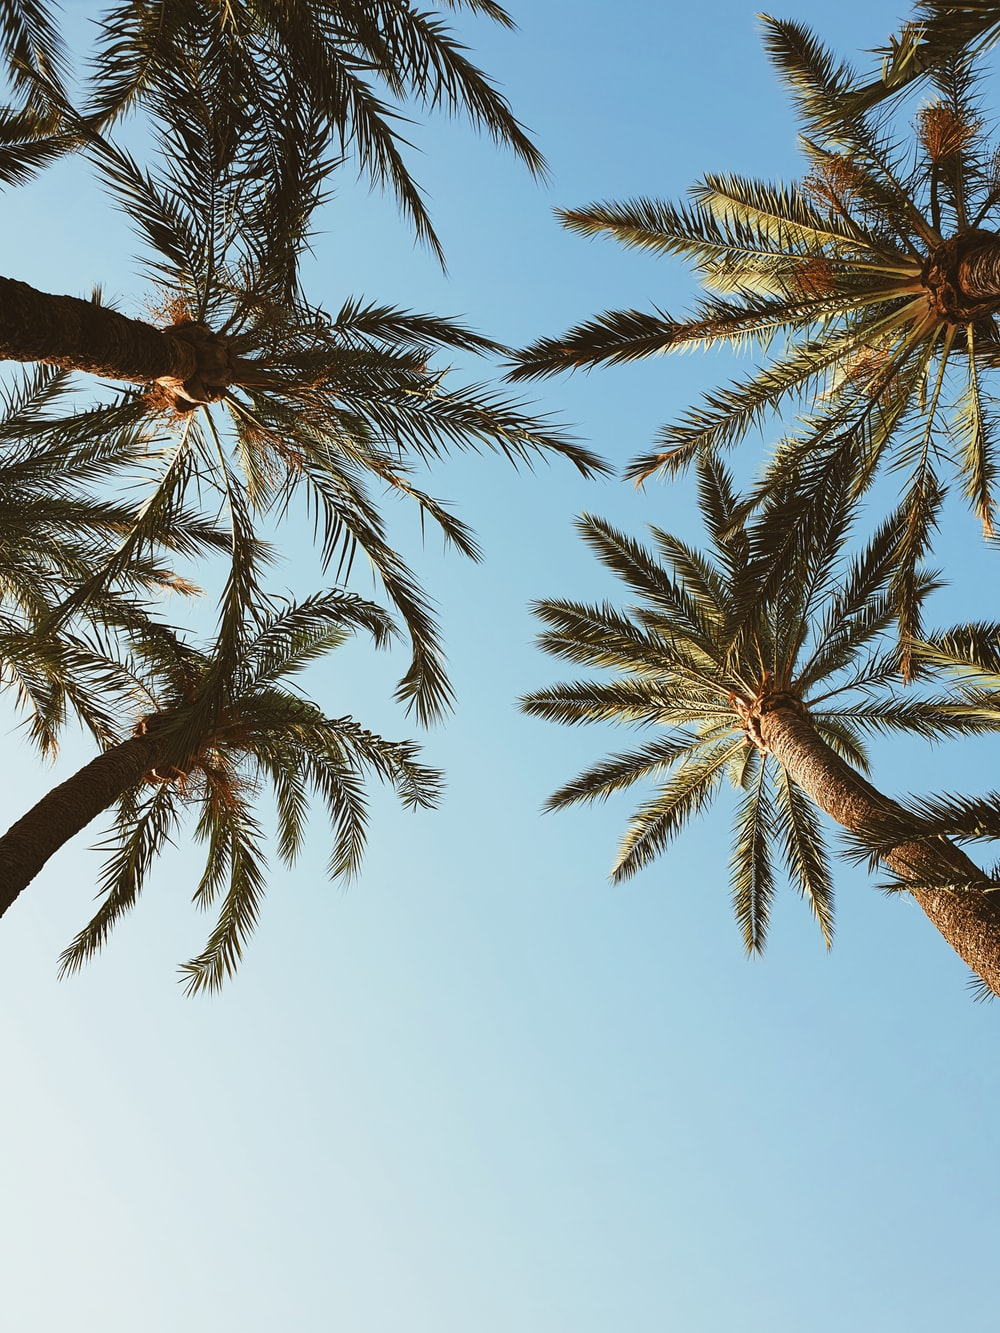 green and brown palm tree under blue sky during daytime